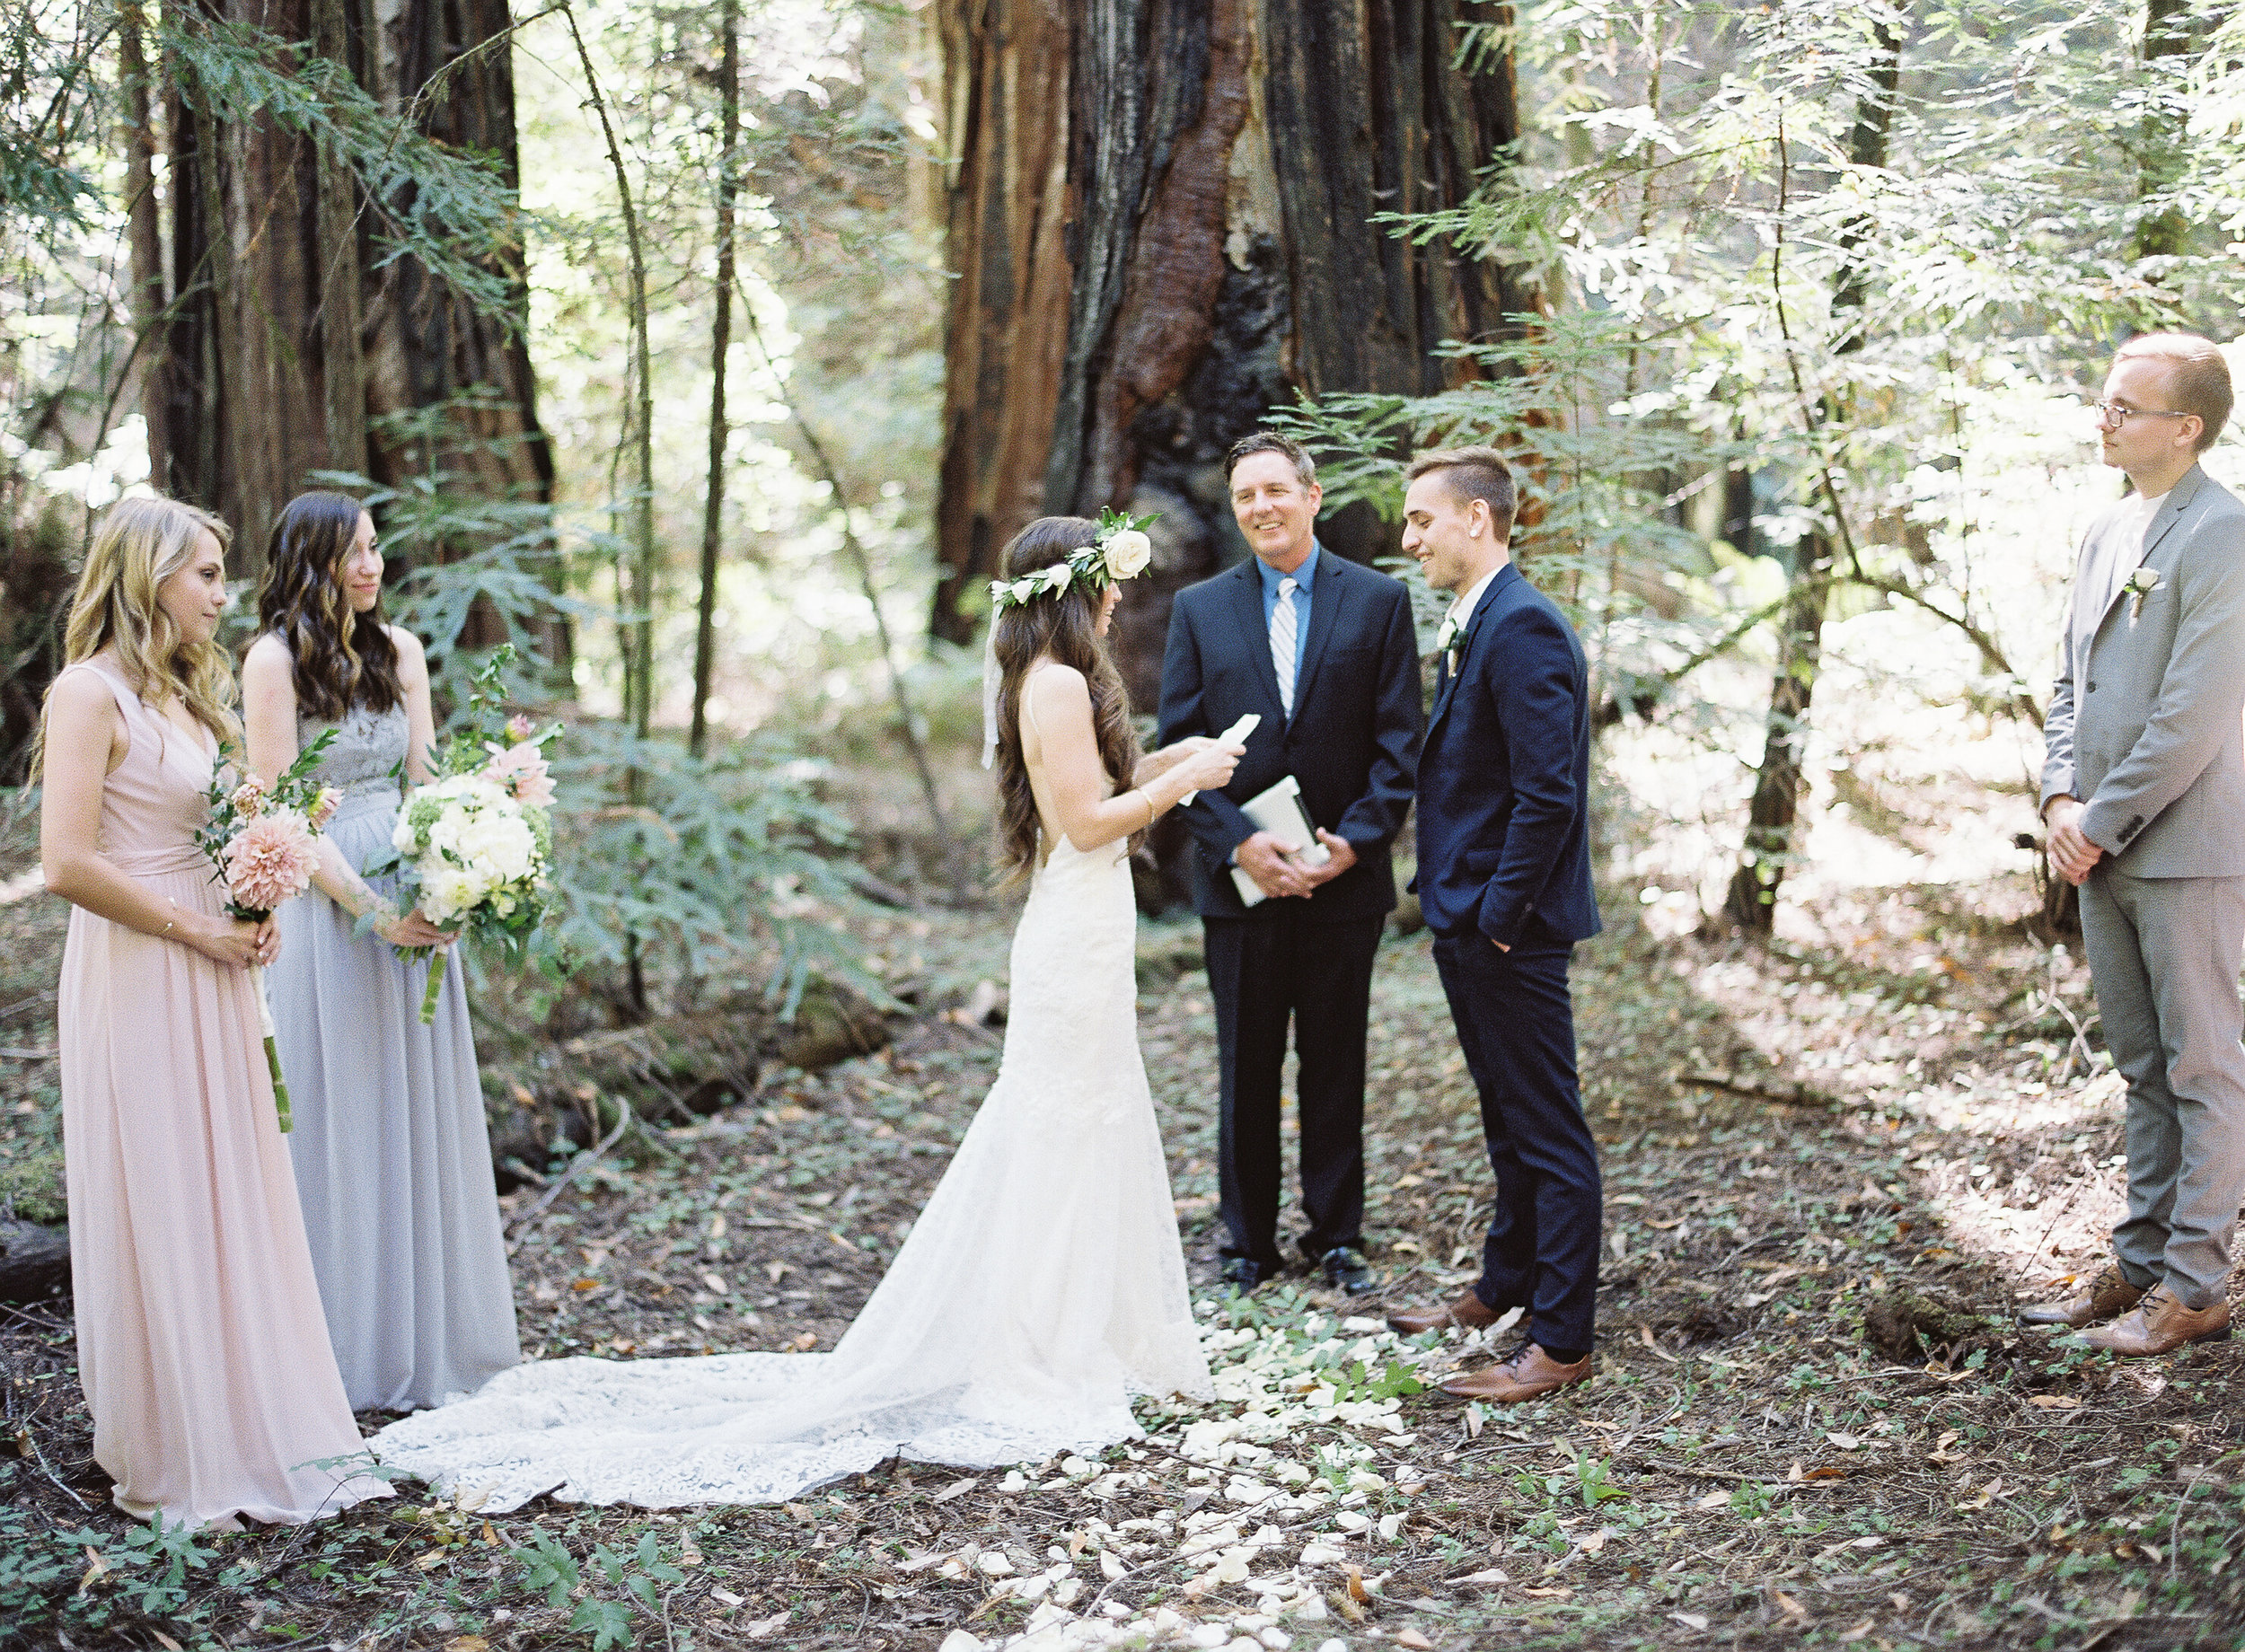 Meghan Mehan Photography | California Wedding Photographer | Napa California Wedding Photographer 077.jpg